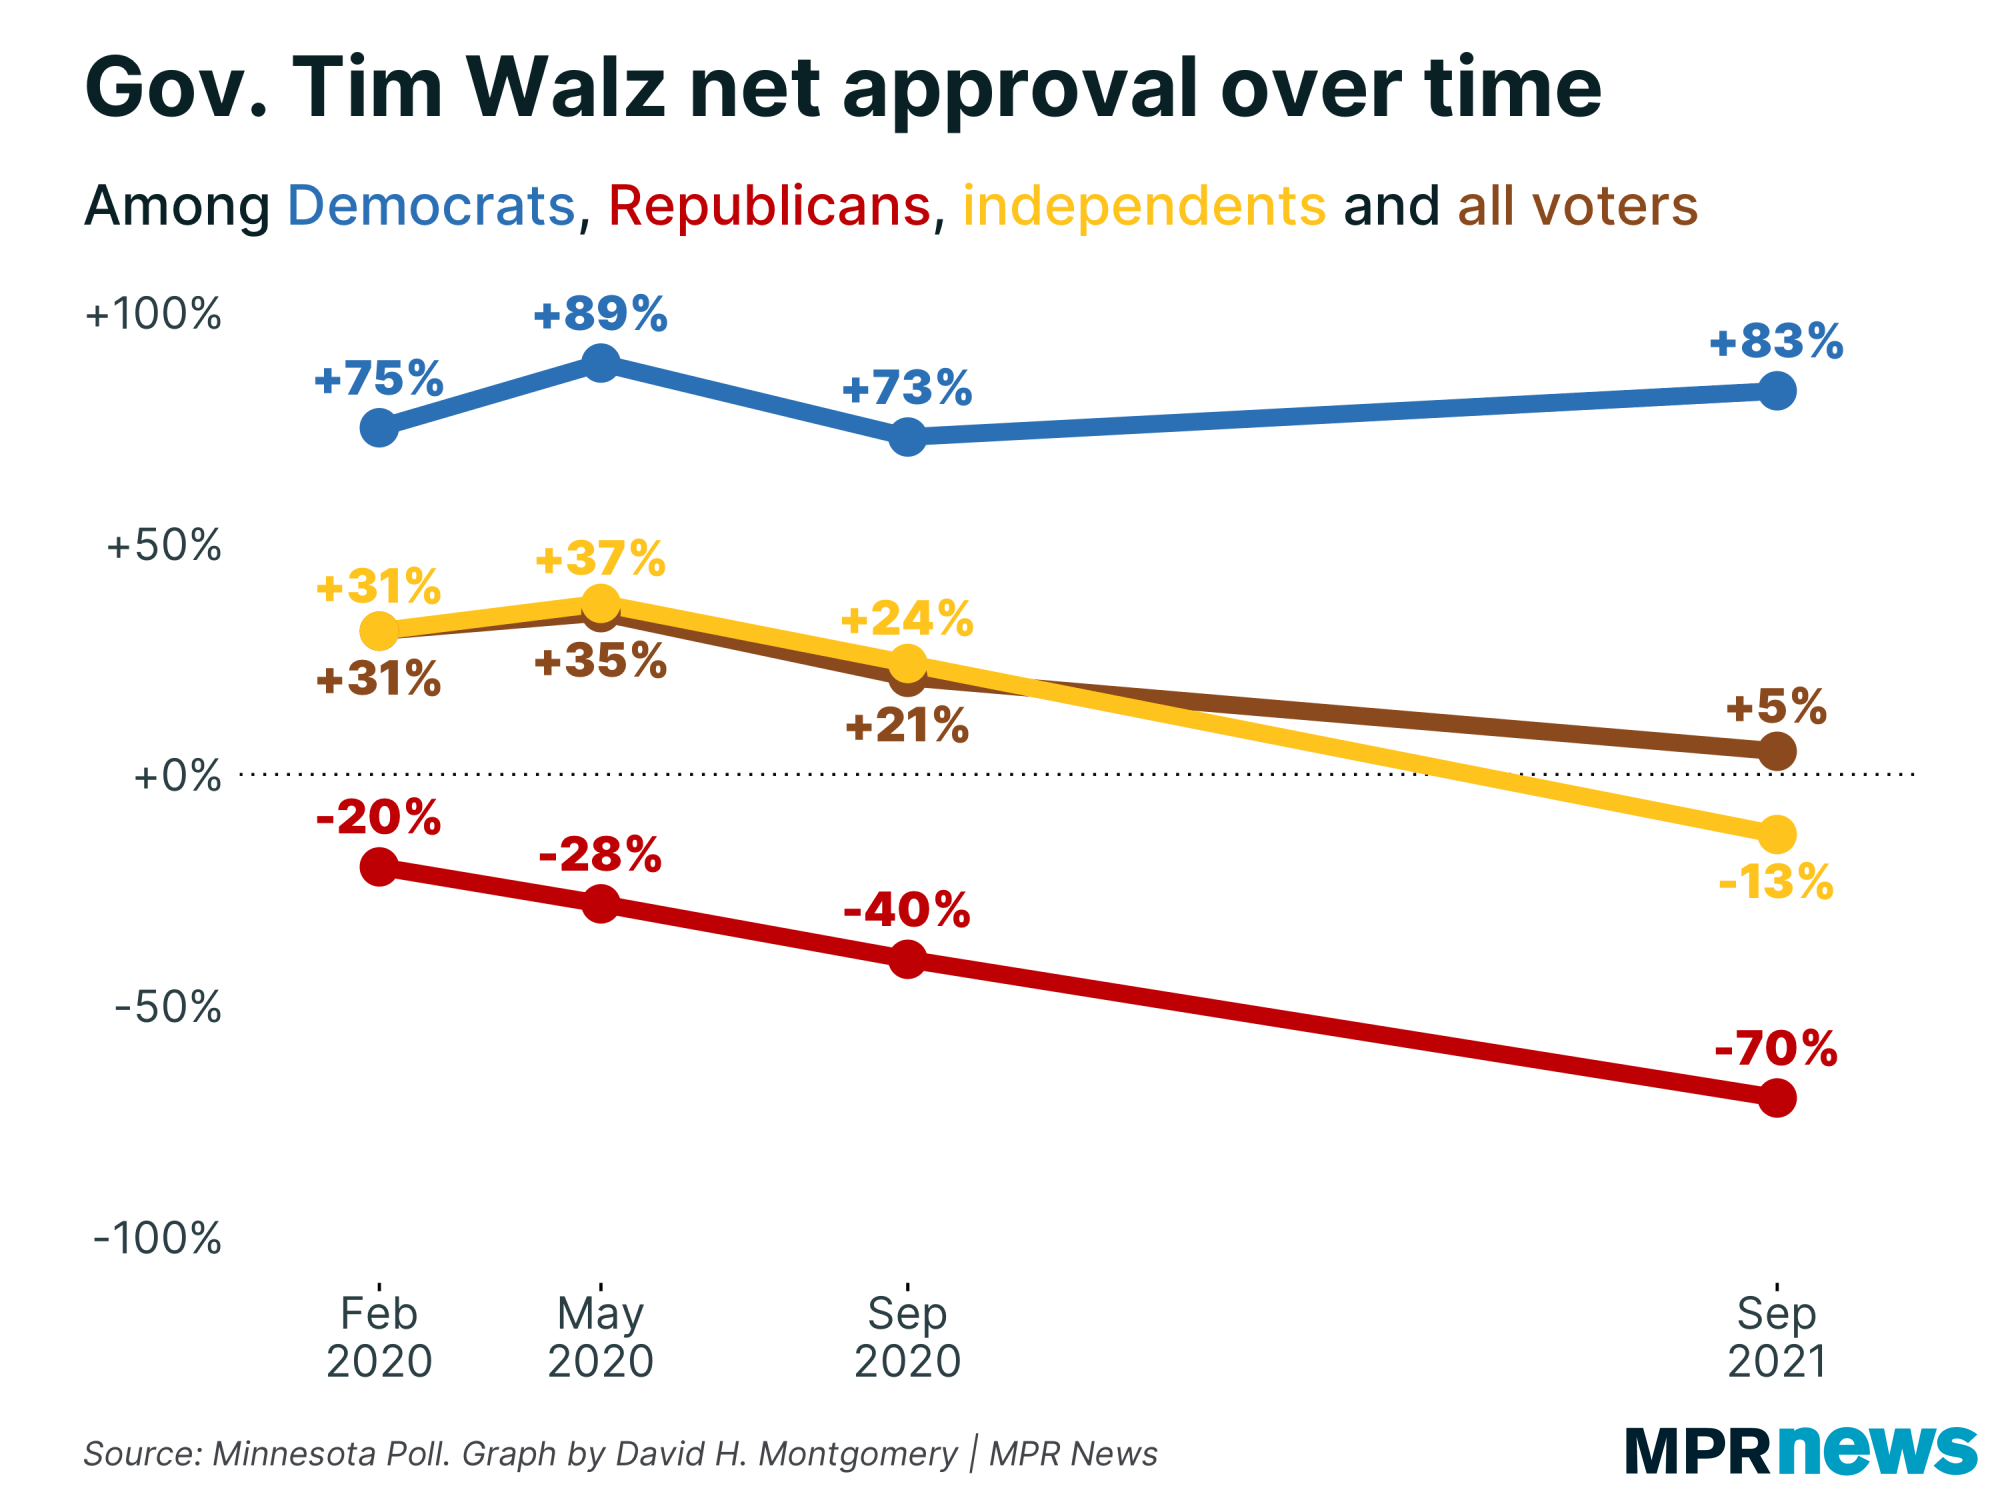 Graph of Minnesota voter approval of Tim Walz over time